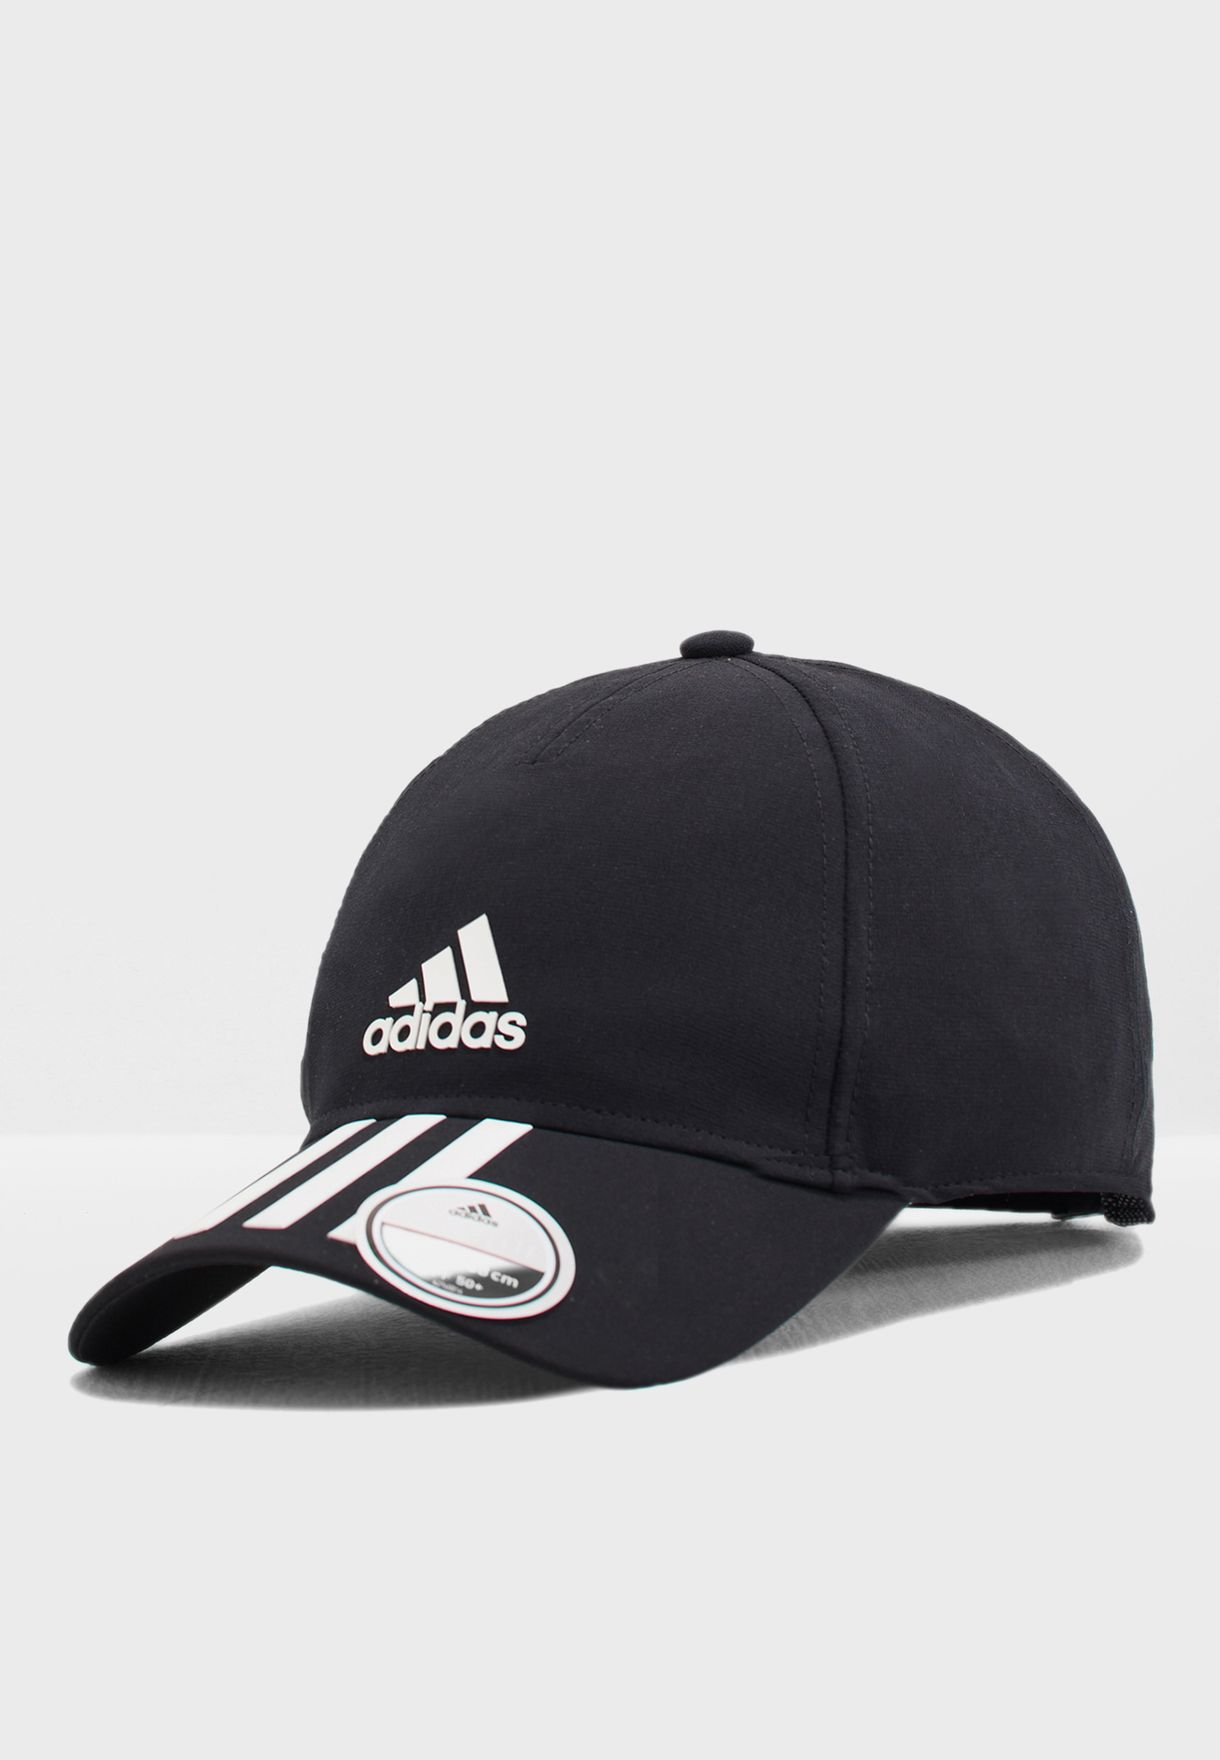 9260163f Shop adidas black C40 6 Panel 3 Stripe Climalite Cap DT8542 for Men ...